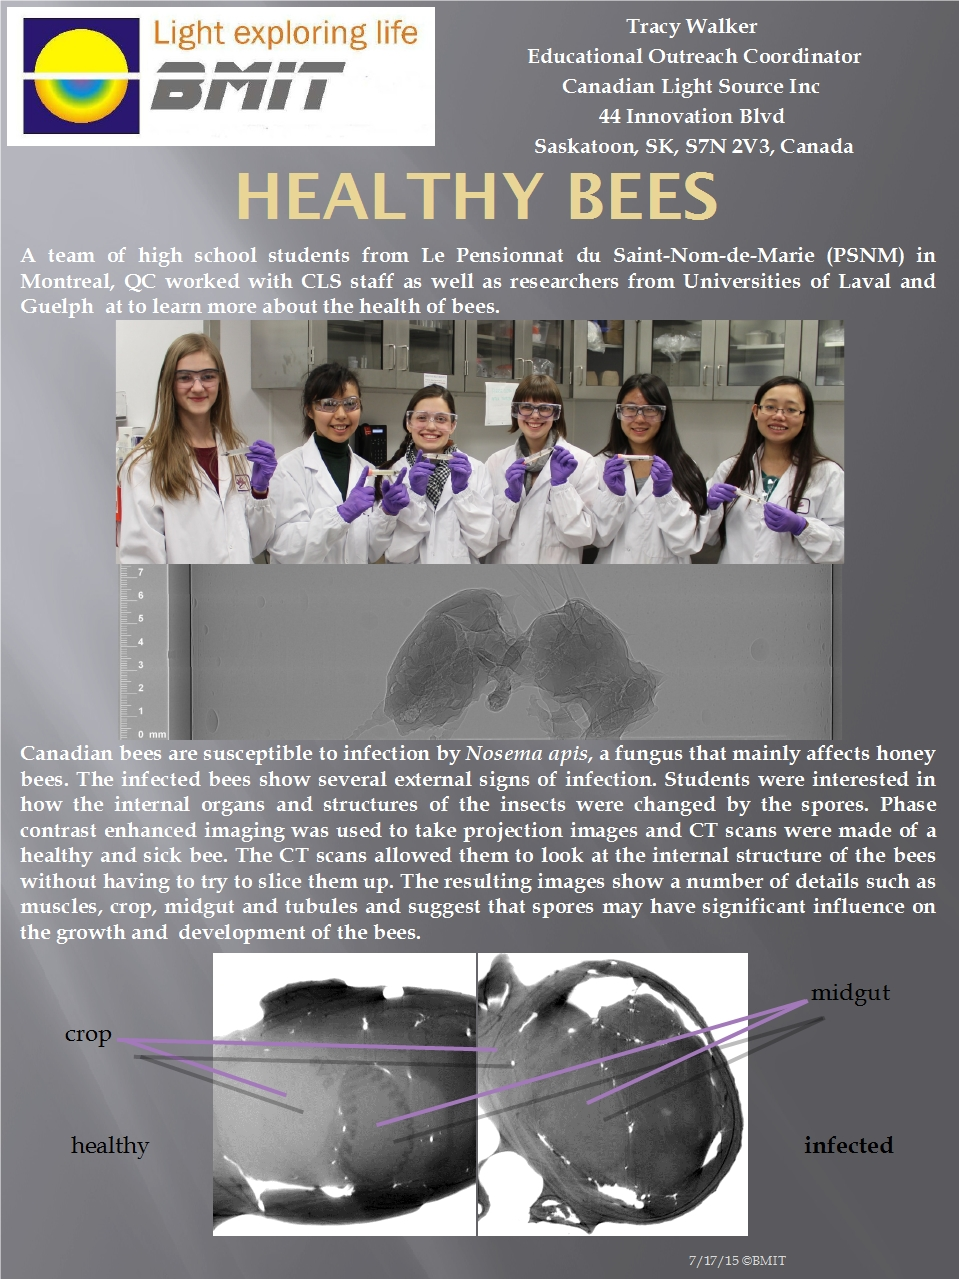 Healthy Bees Image